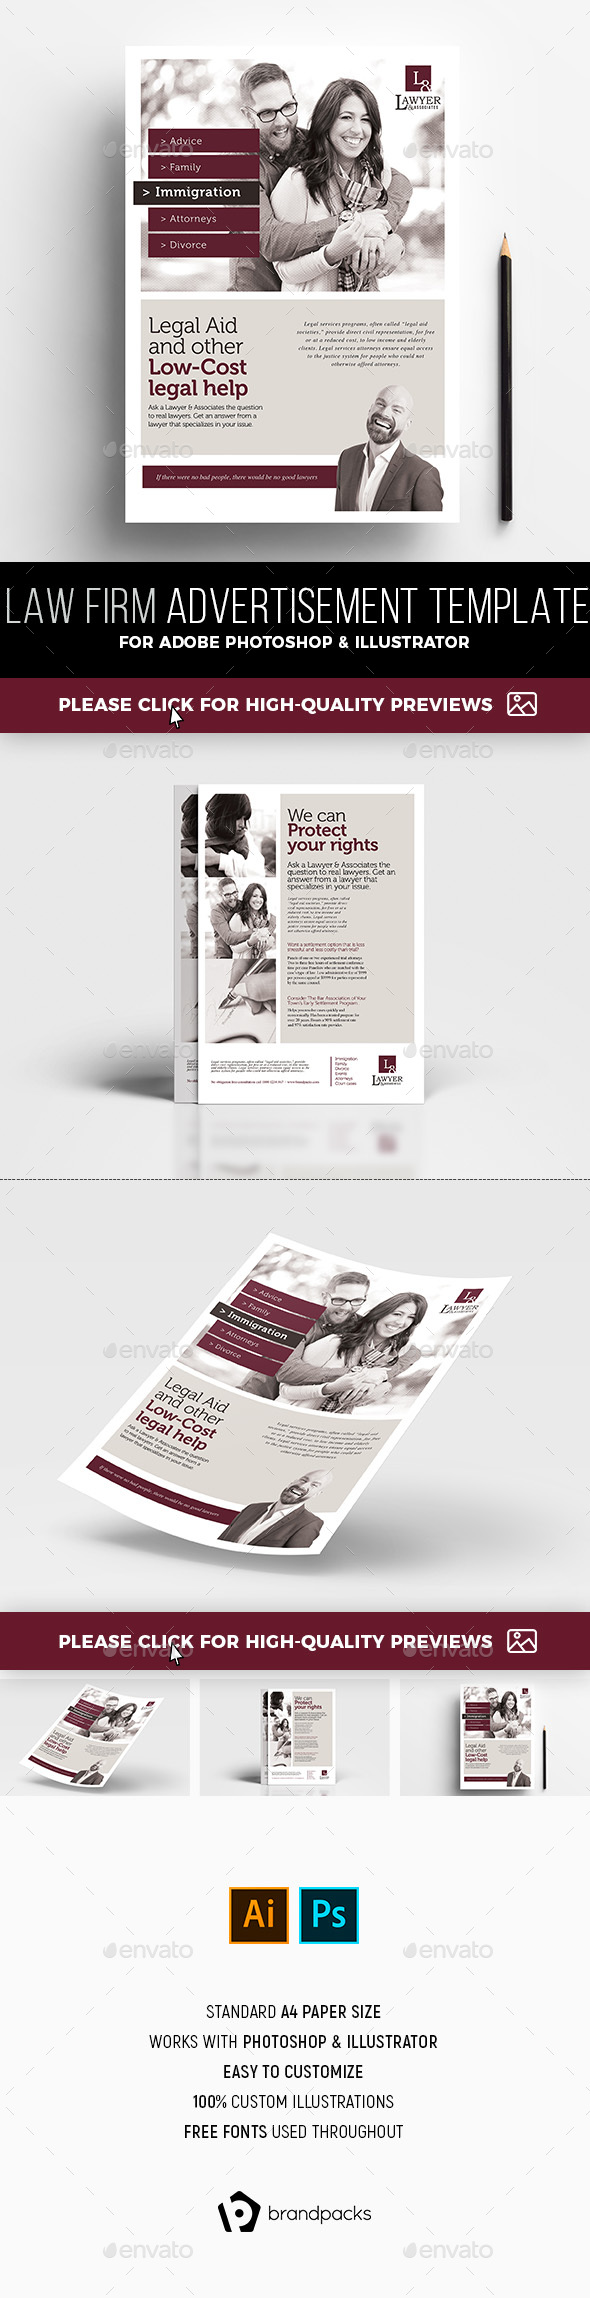 A4 Law Firm Advertisement Template - Corporate Flyers